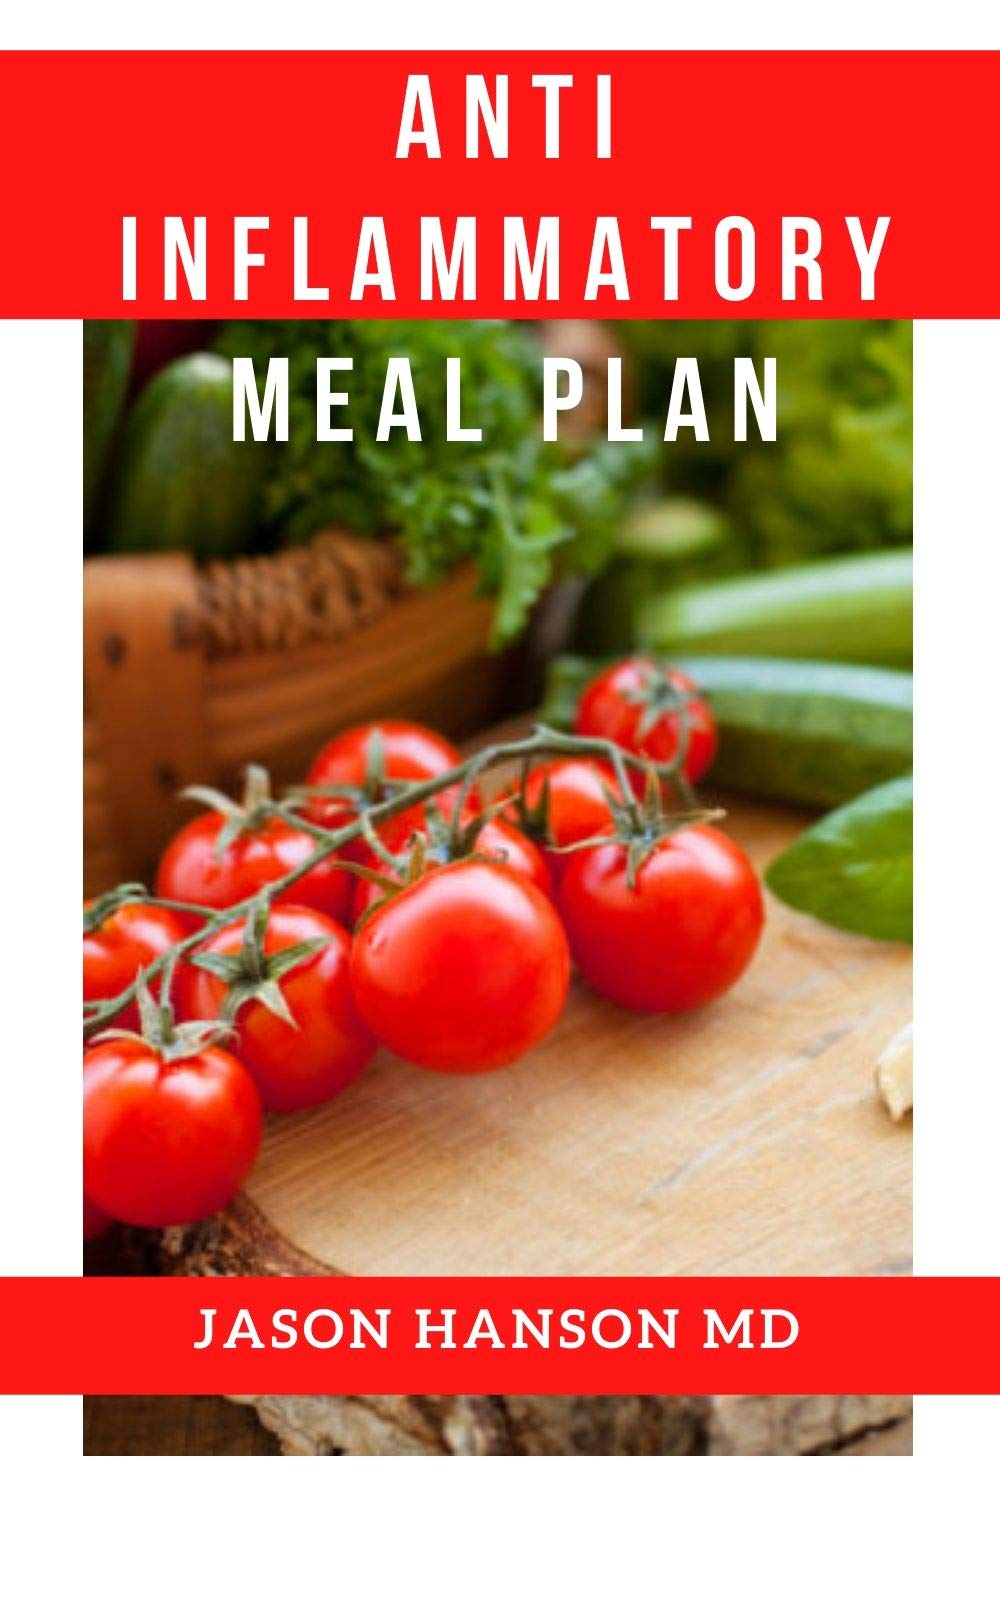 ANTI INFLAMMATORY DIET MEAL PLAN: A Complete Guide to The Anti-Inflammatory Diet Meal Plan, Reduce Inflammation in Our Body and Lose Weight.